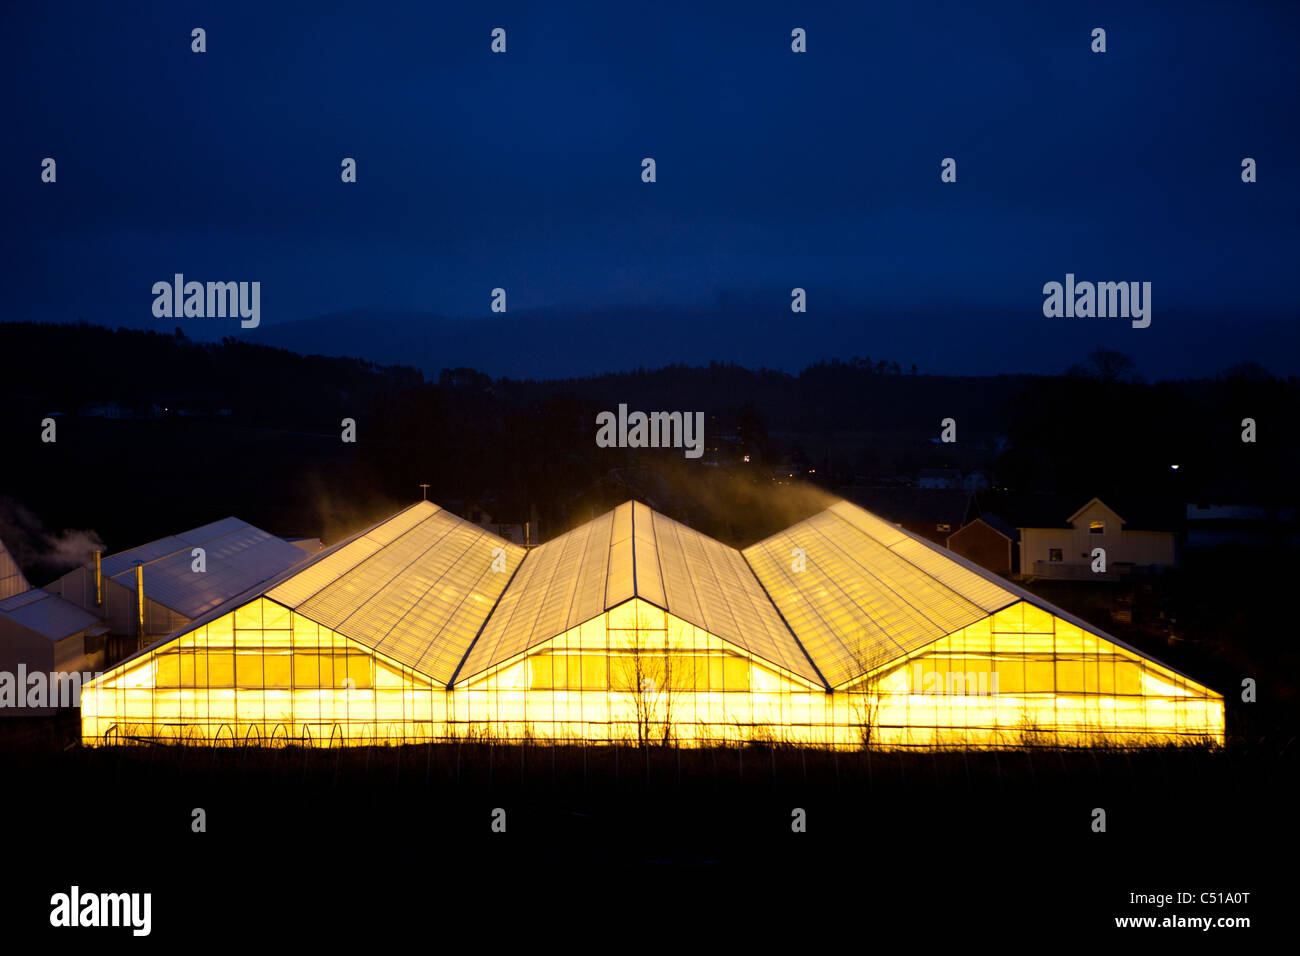 Bright lights glow out from greenhouse with hills in the distant fading away into the sky at nighttime - Stock Image